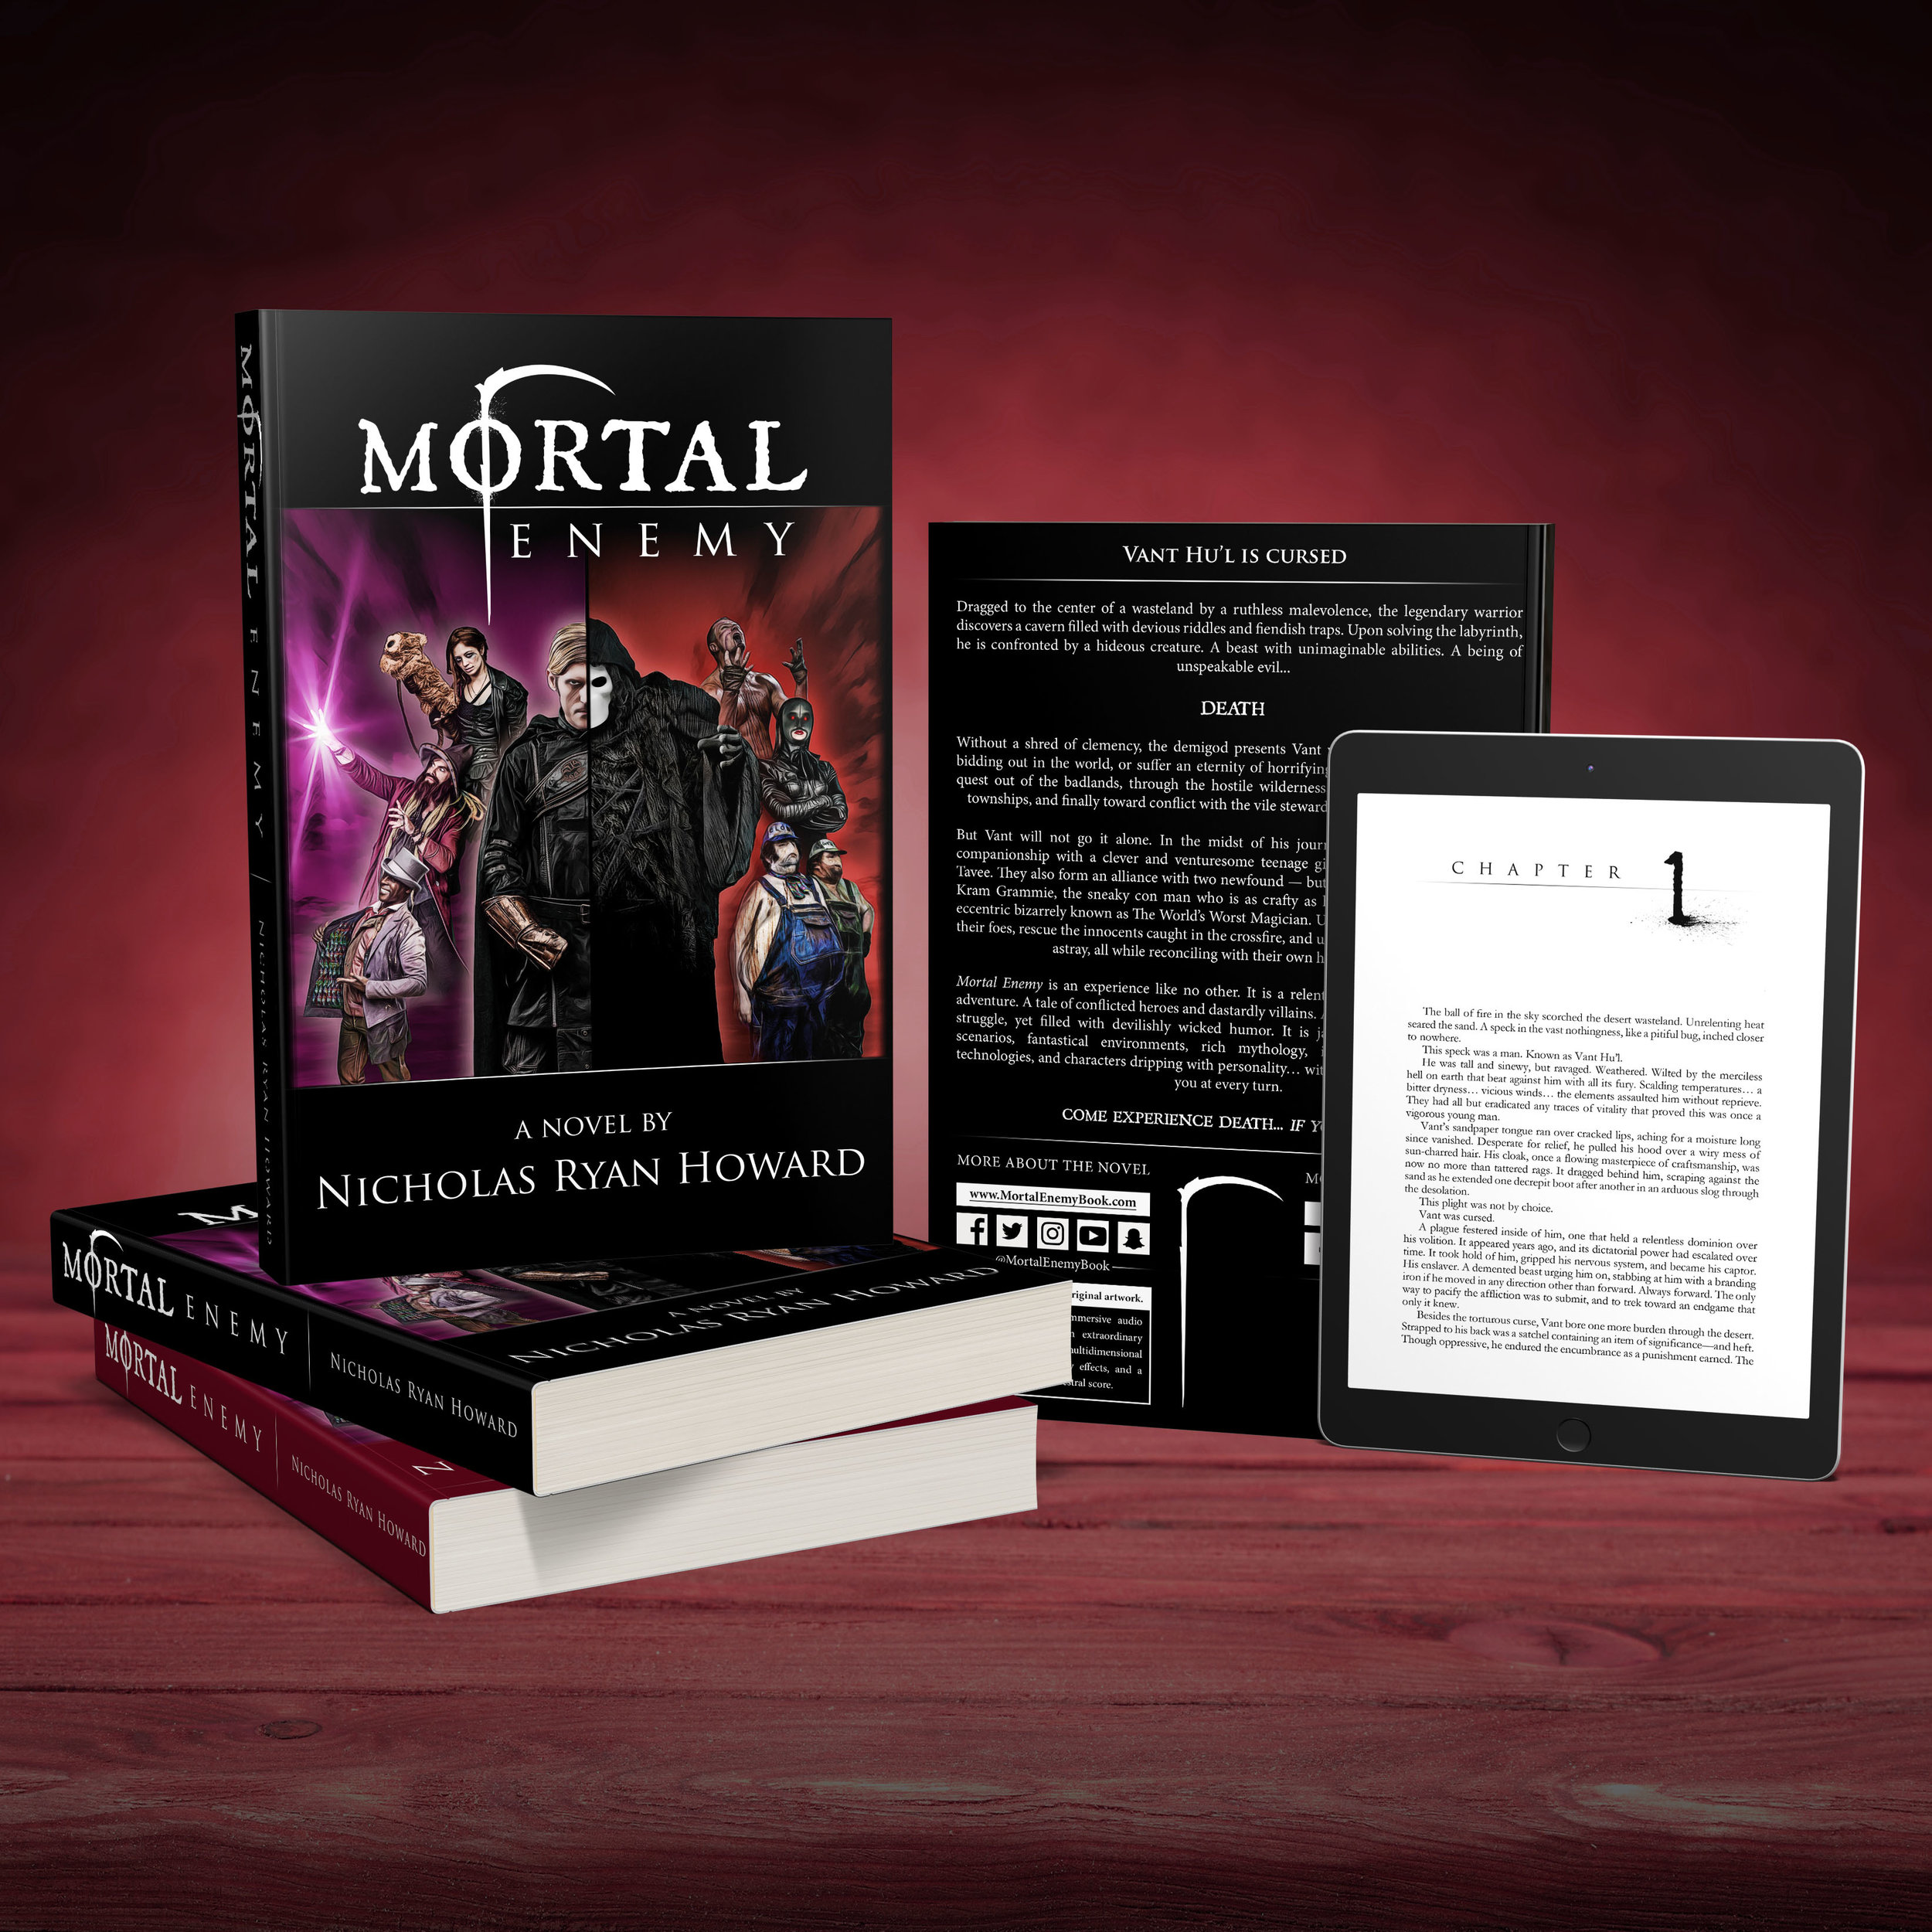 Mortal Enemy - The Novel